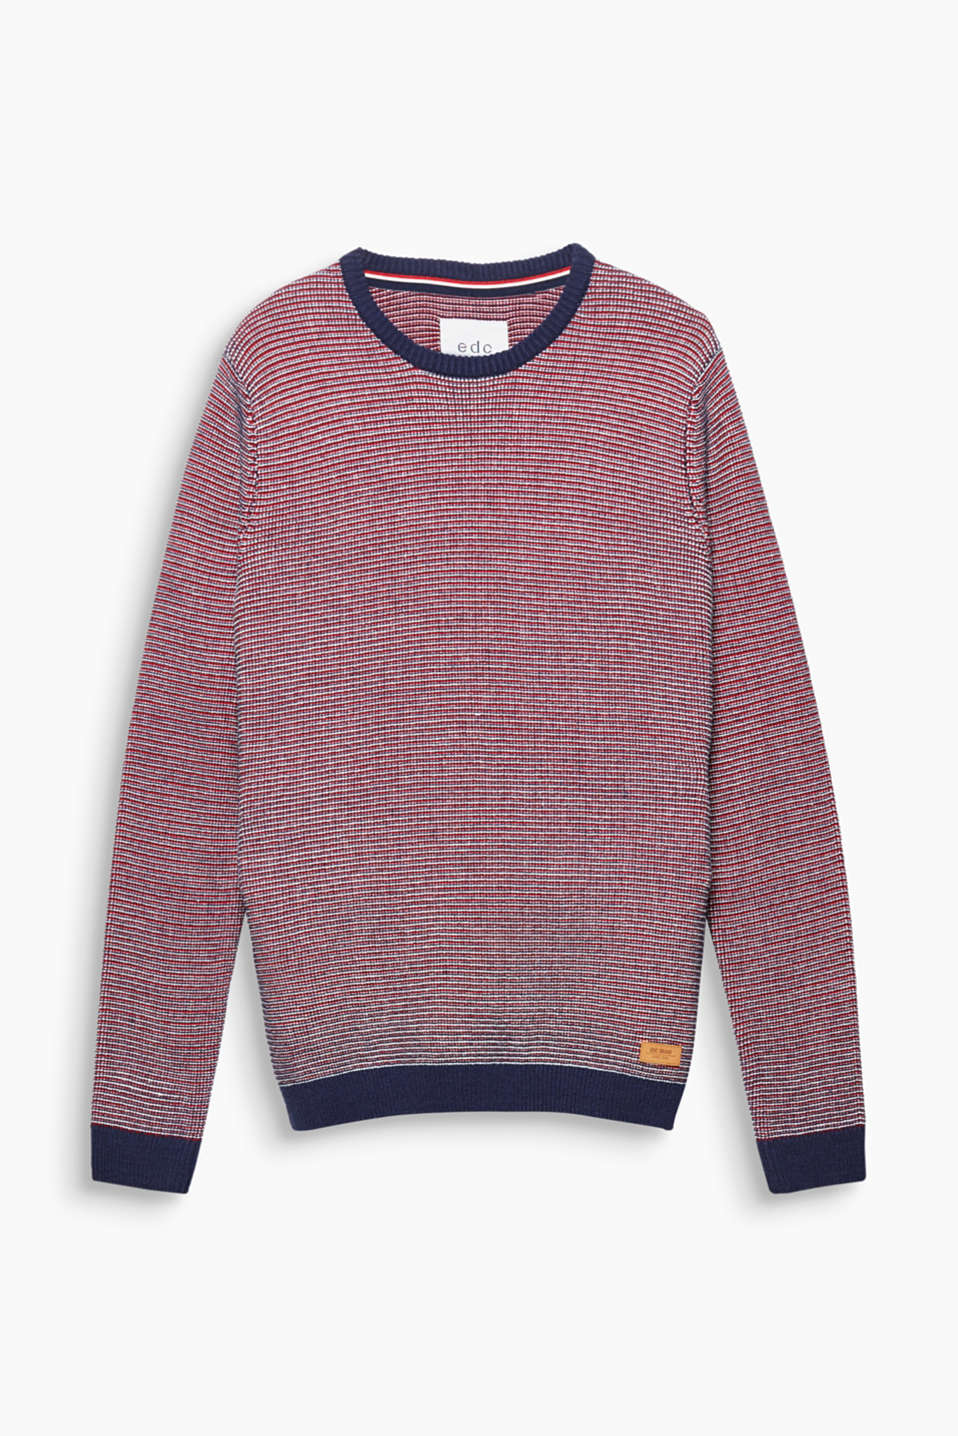 Denne flerfarvede sweater i førsteklasses strik er til dit sporty look.